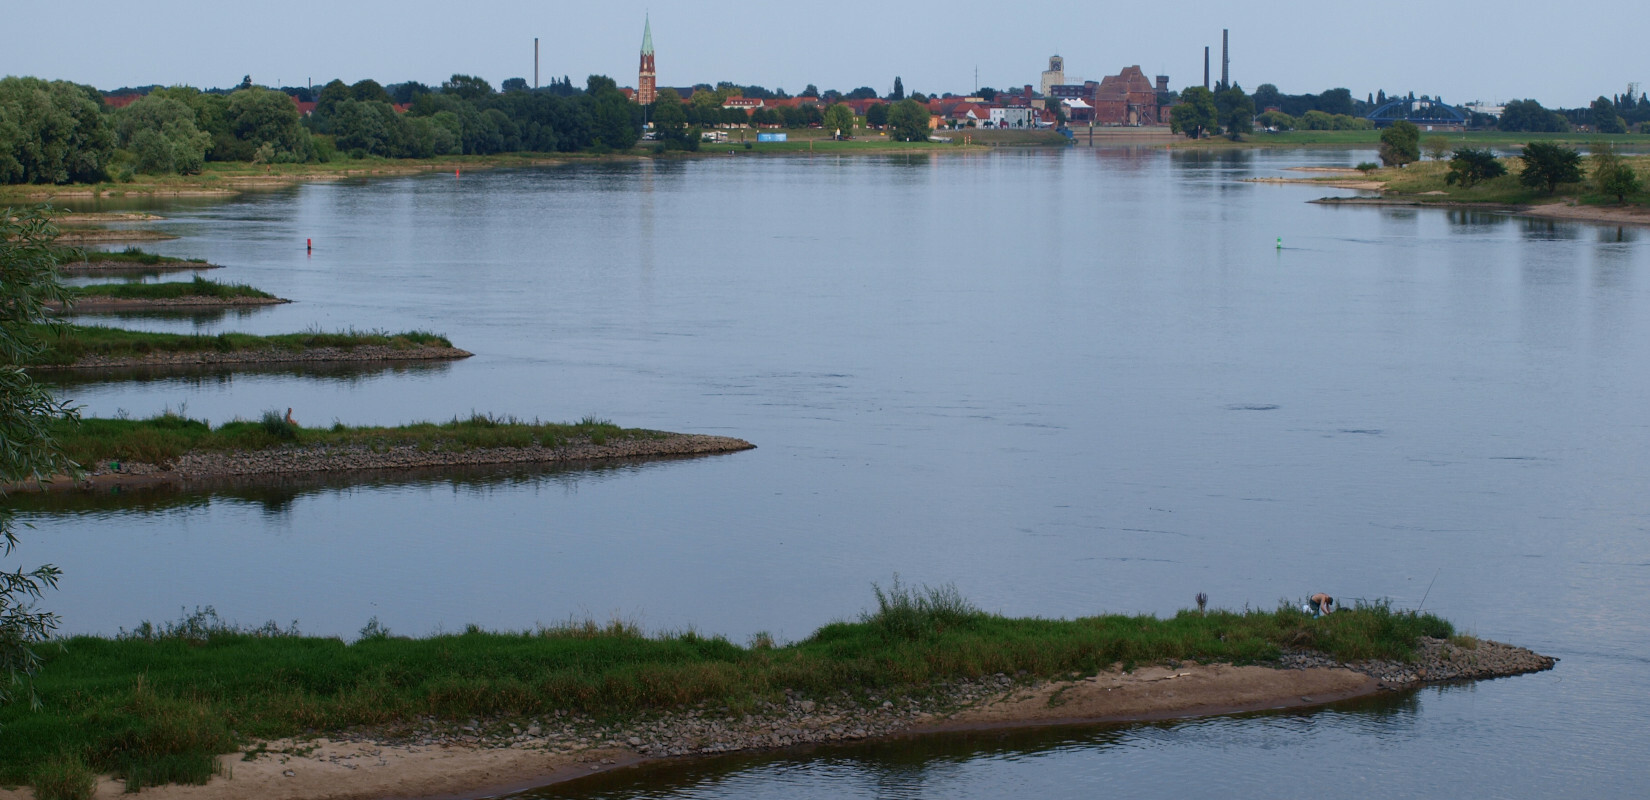 The river Elbe at Cumlosen